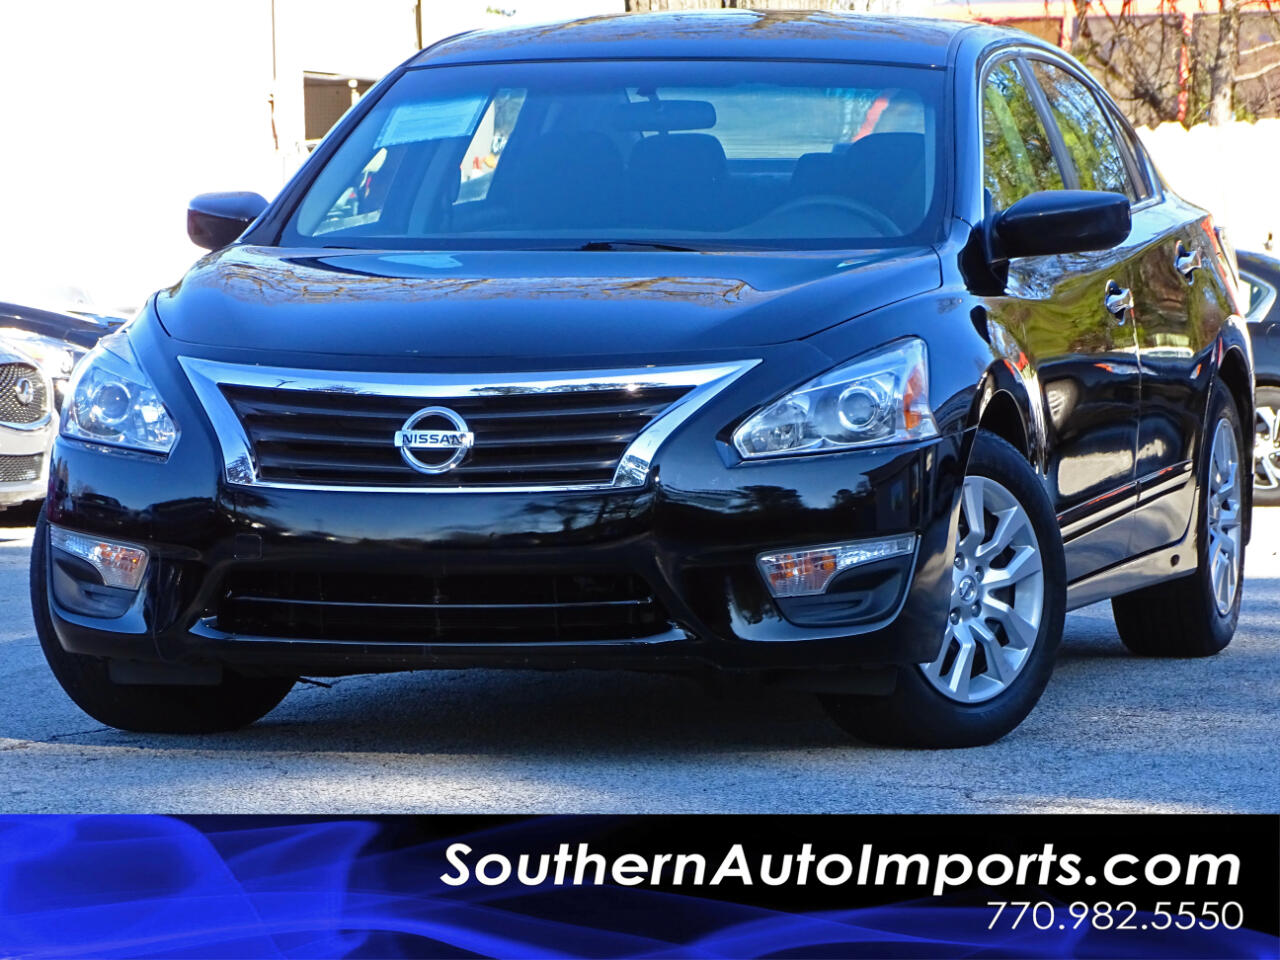 2015 Nissan Altima 2.5 S w/Back Up Camera